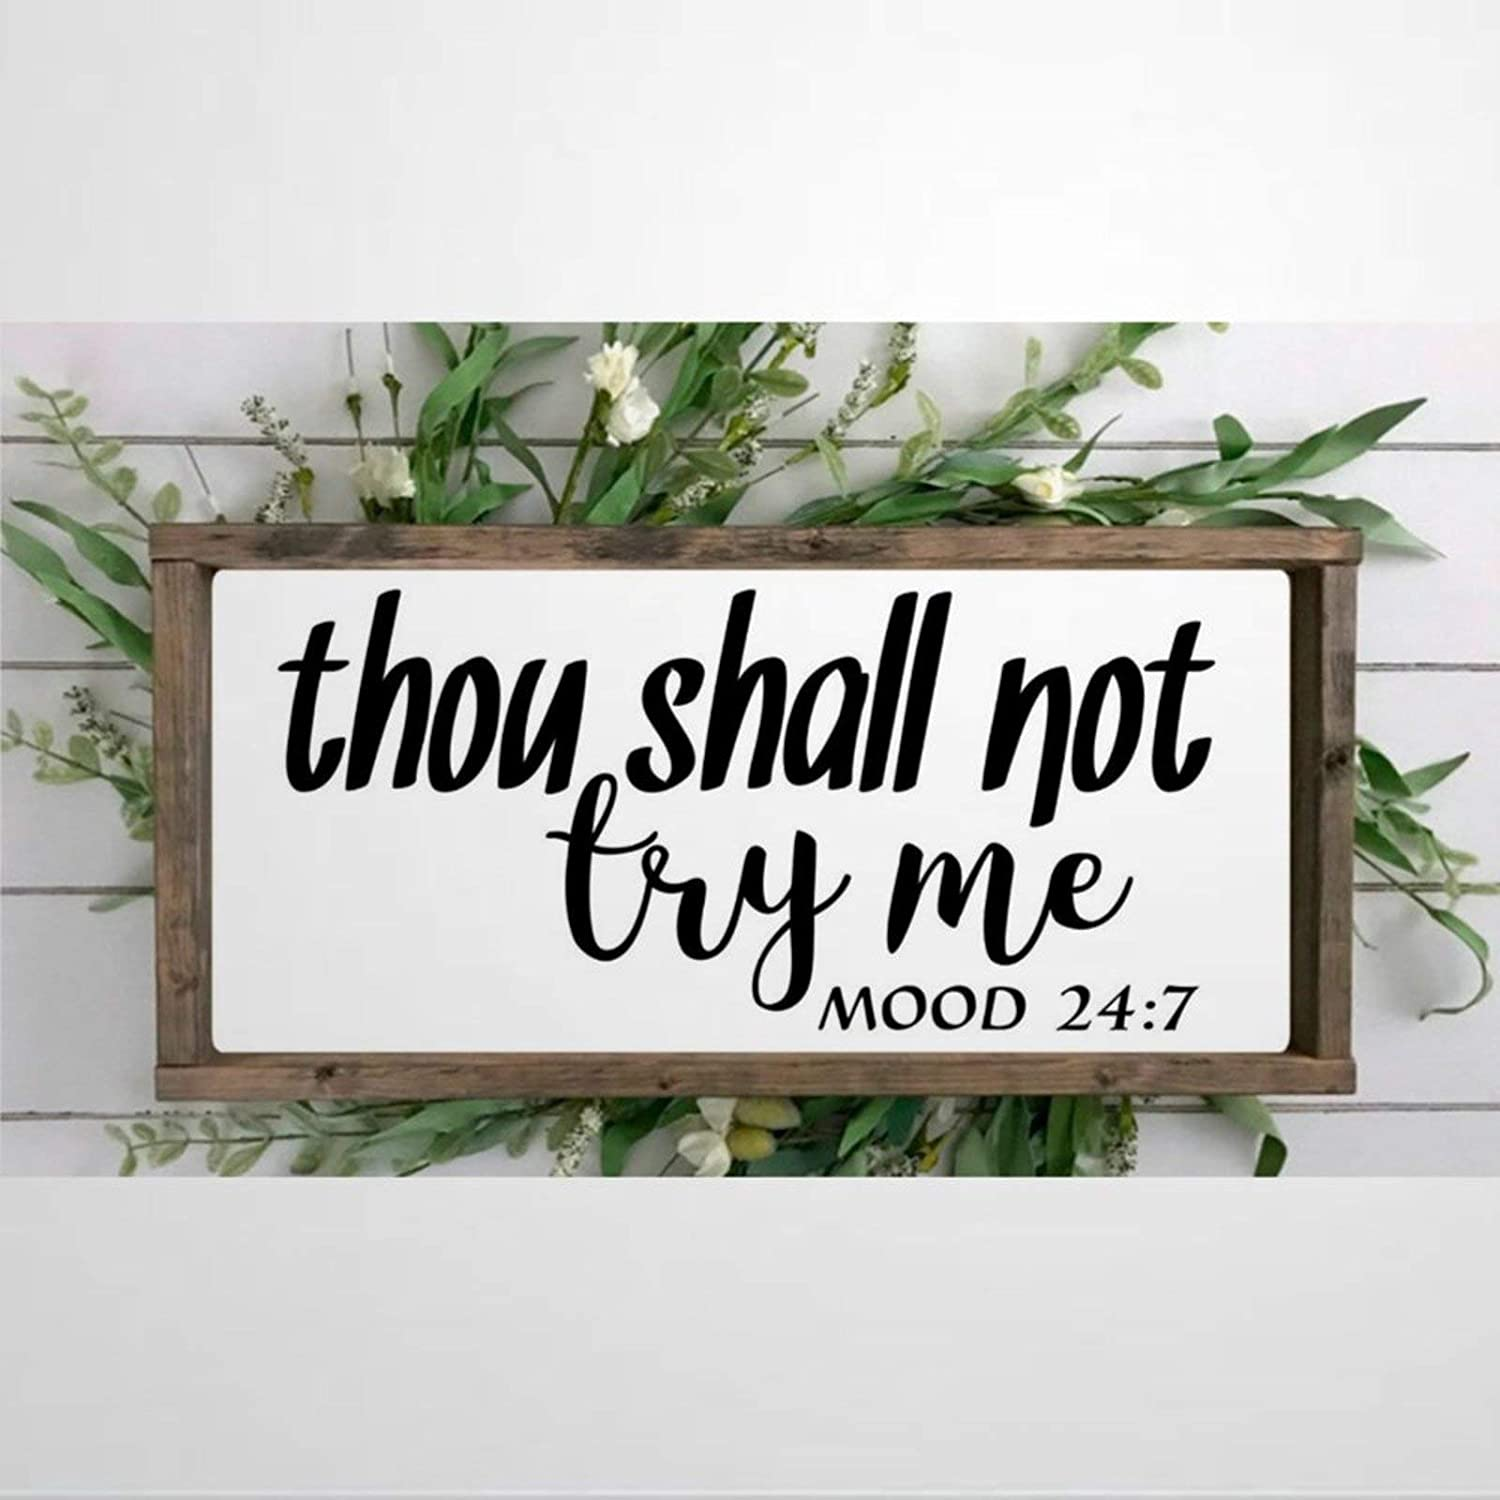 DONL9BAUER Framed Wooden Sign Thou Shall Not Try Me Wall Hanging Mood 24 7 Wood Sign, Mom Wife Boss Farmhouse Home Decor Wall Art for Living Room